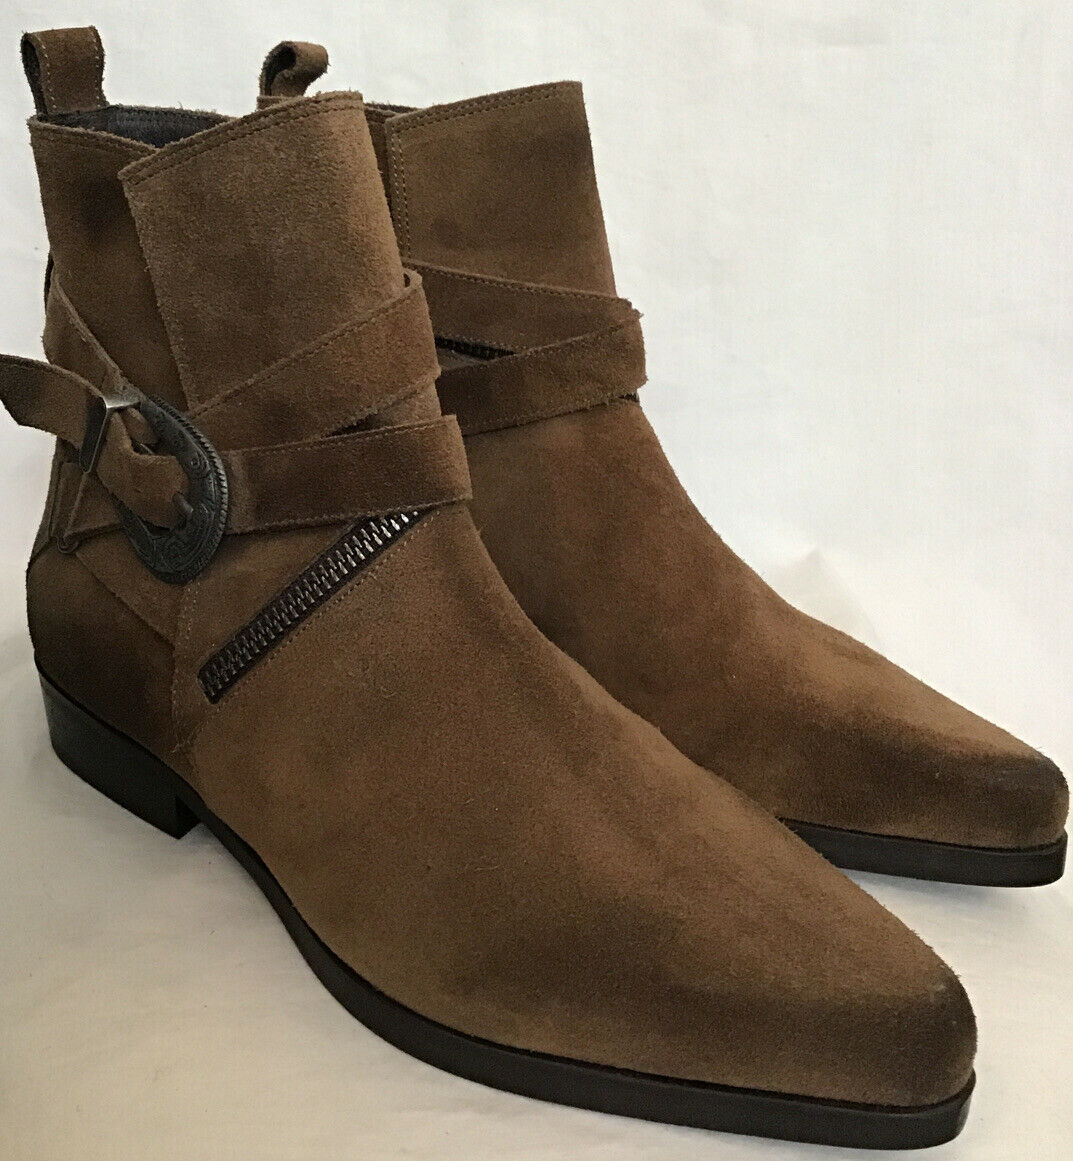 all saints Suede Ankle Boot Brown Pointed Toe Silver Buckle Zipper Size 37